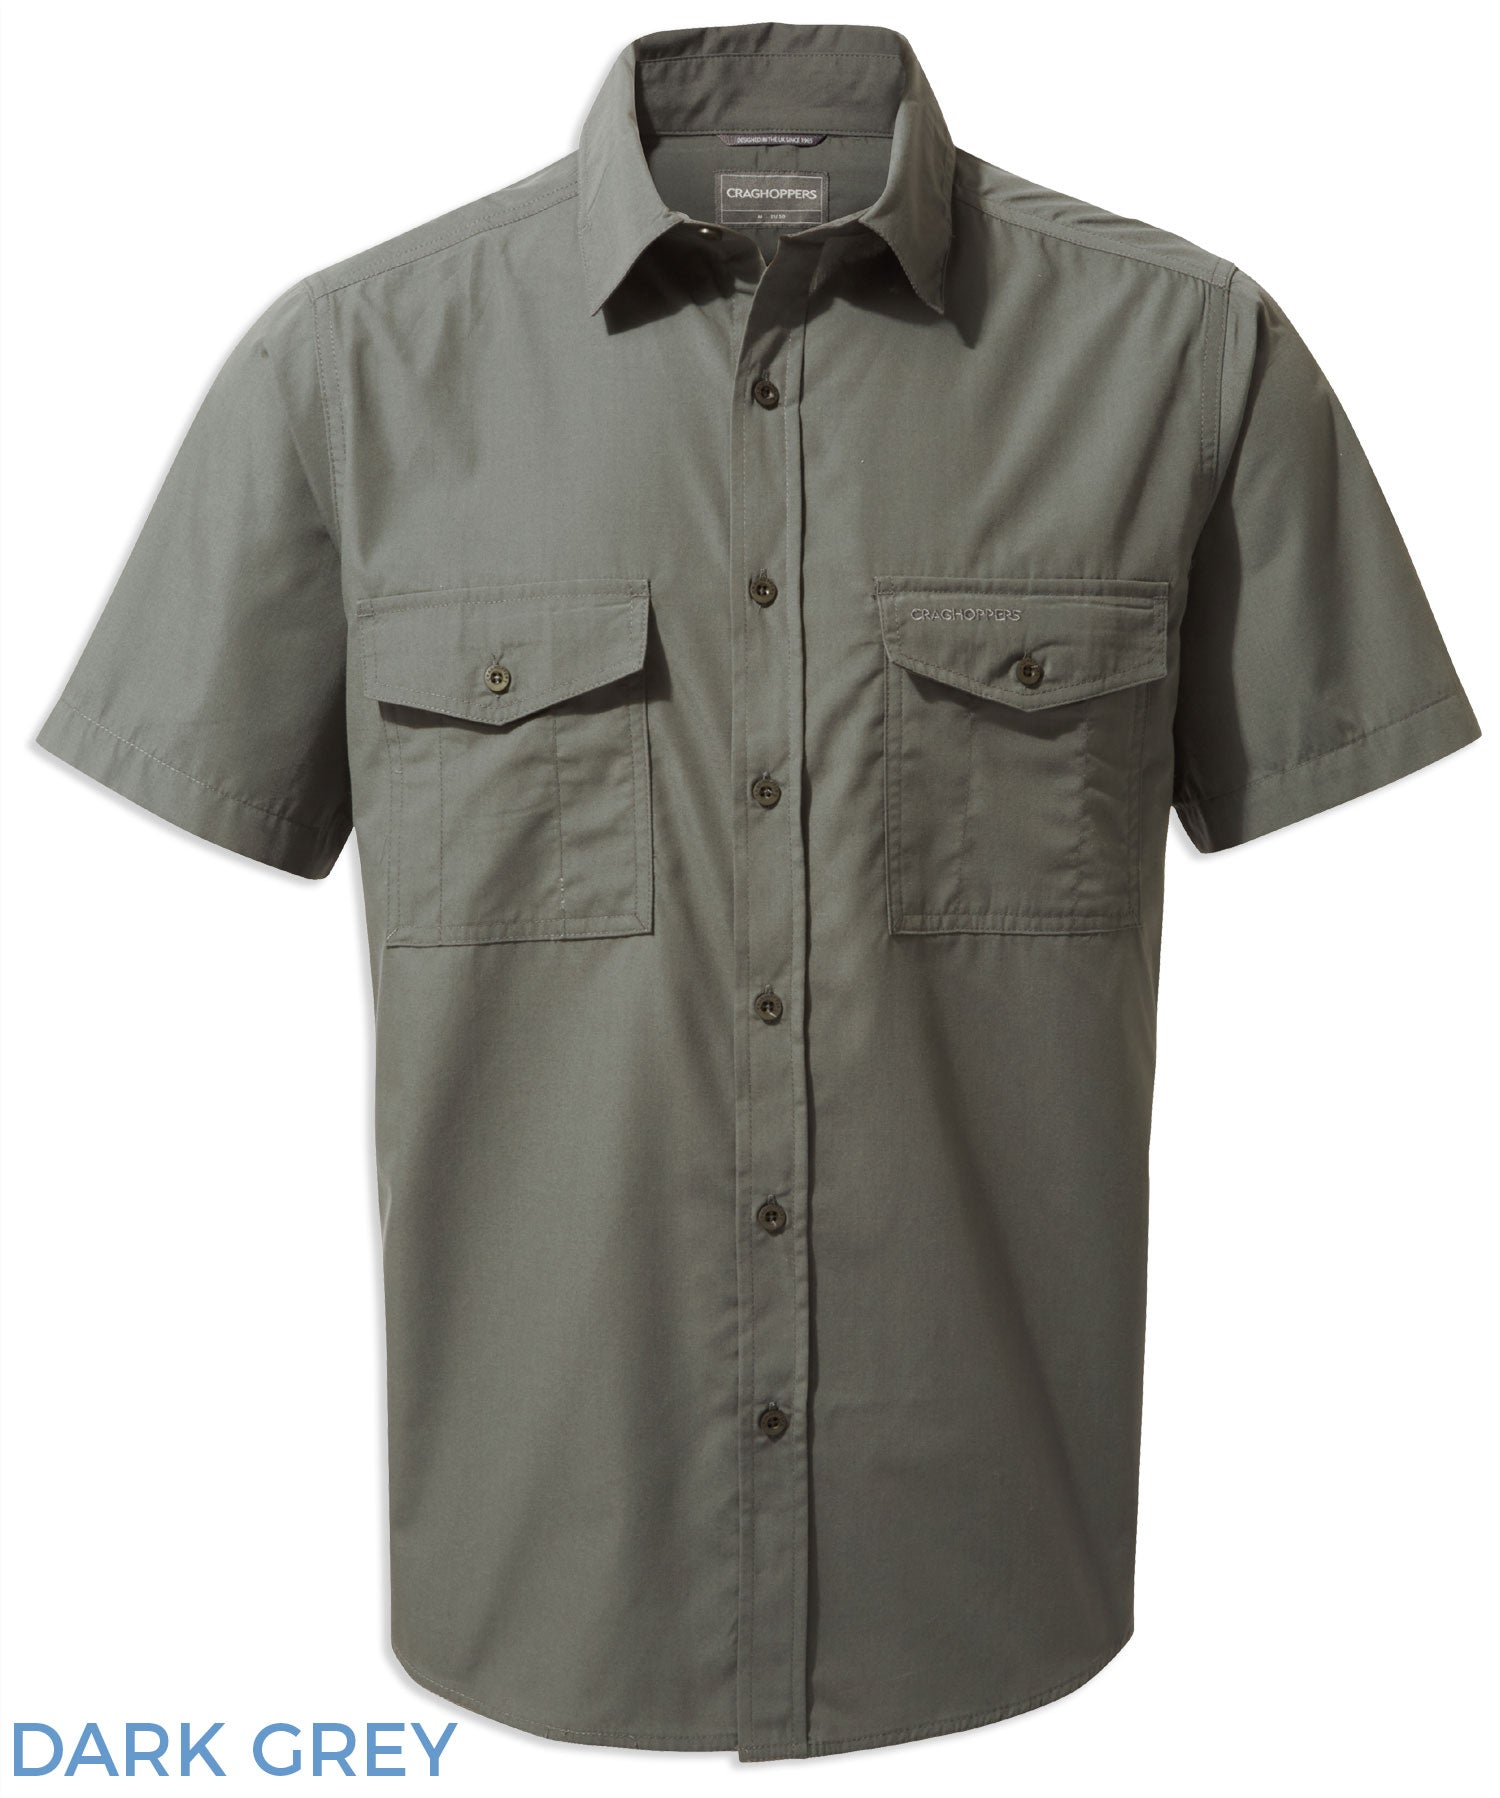 Craghoppers Kiwi Short Sleeved Shirt - Dark Grey